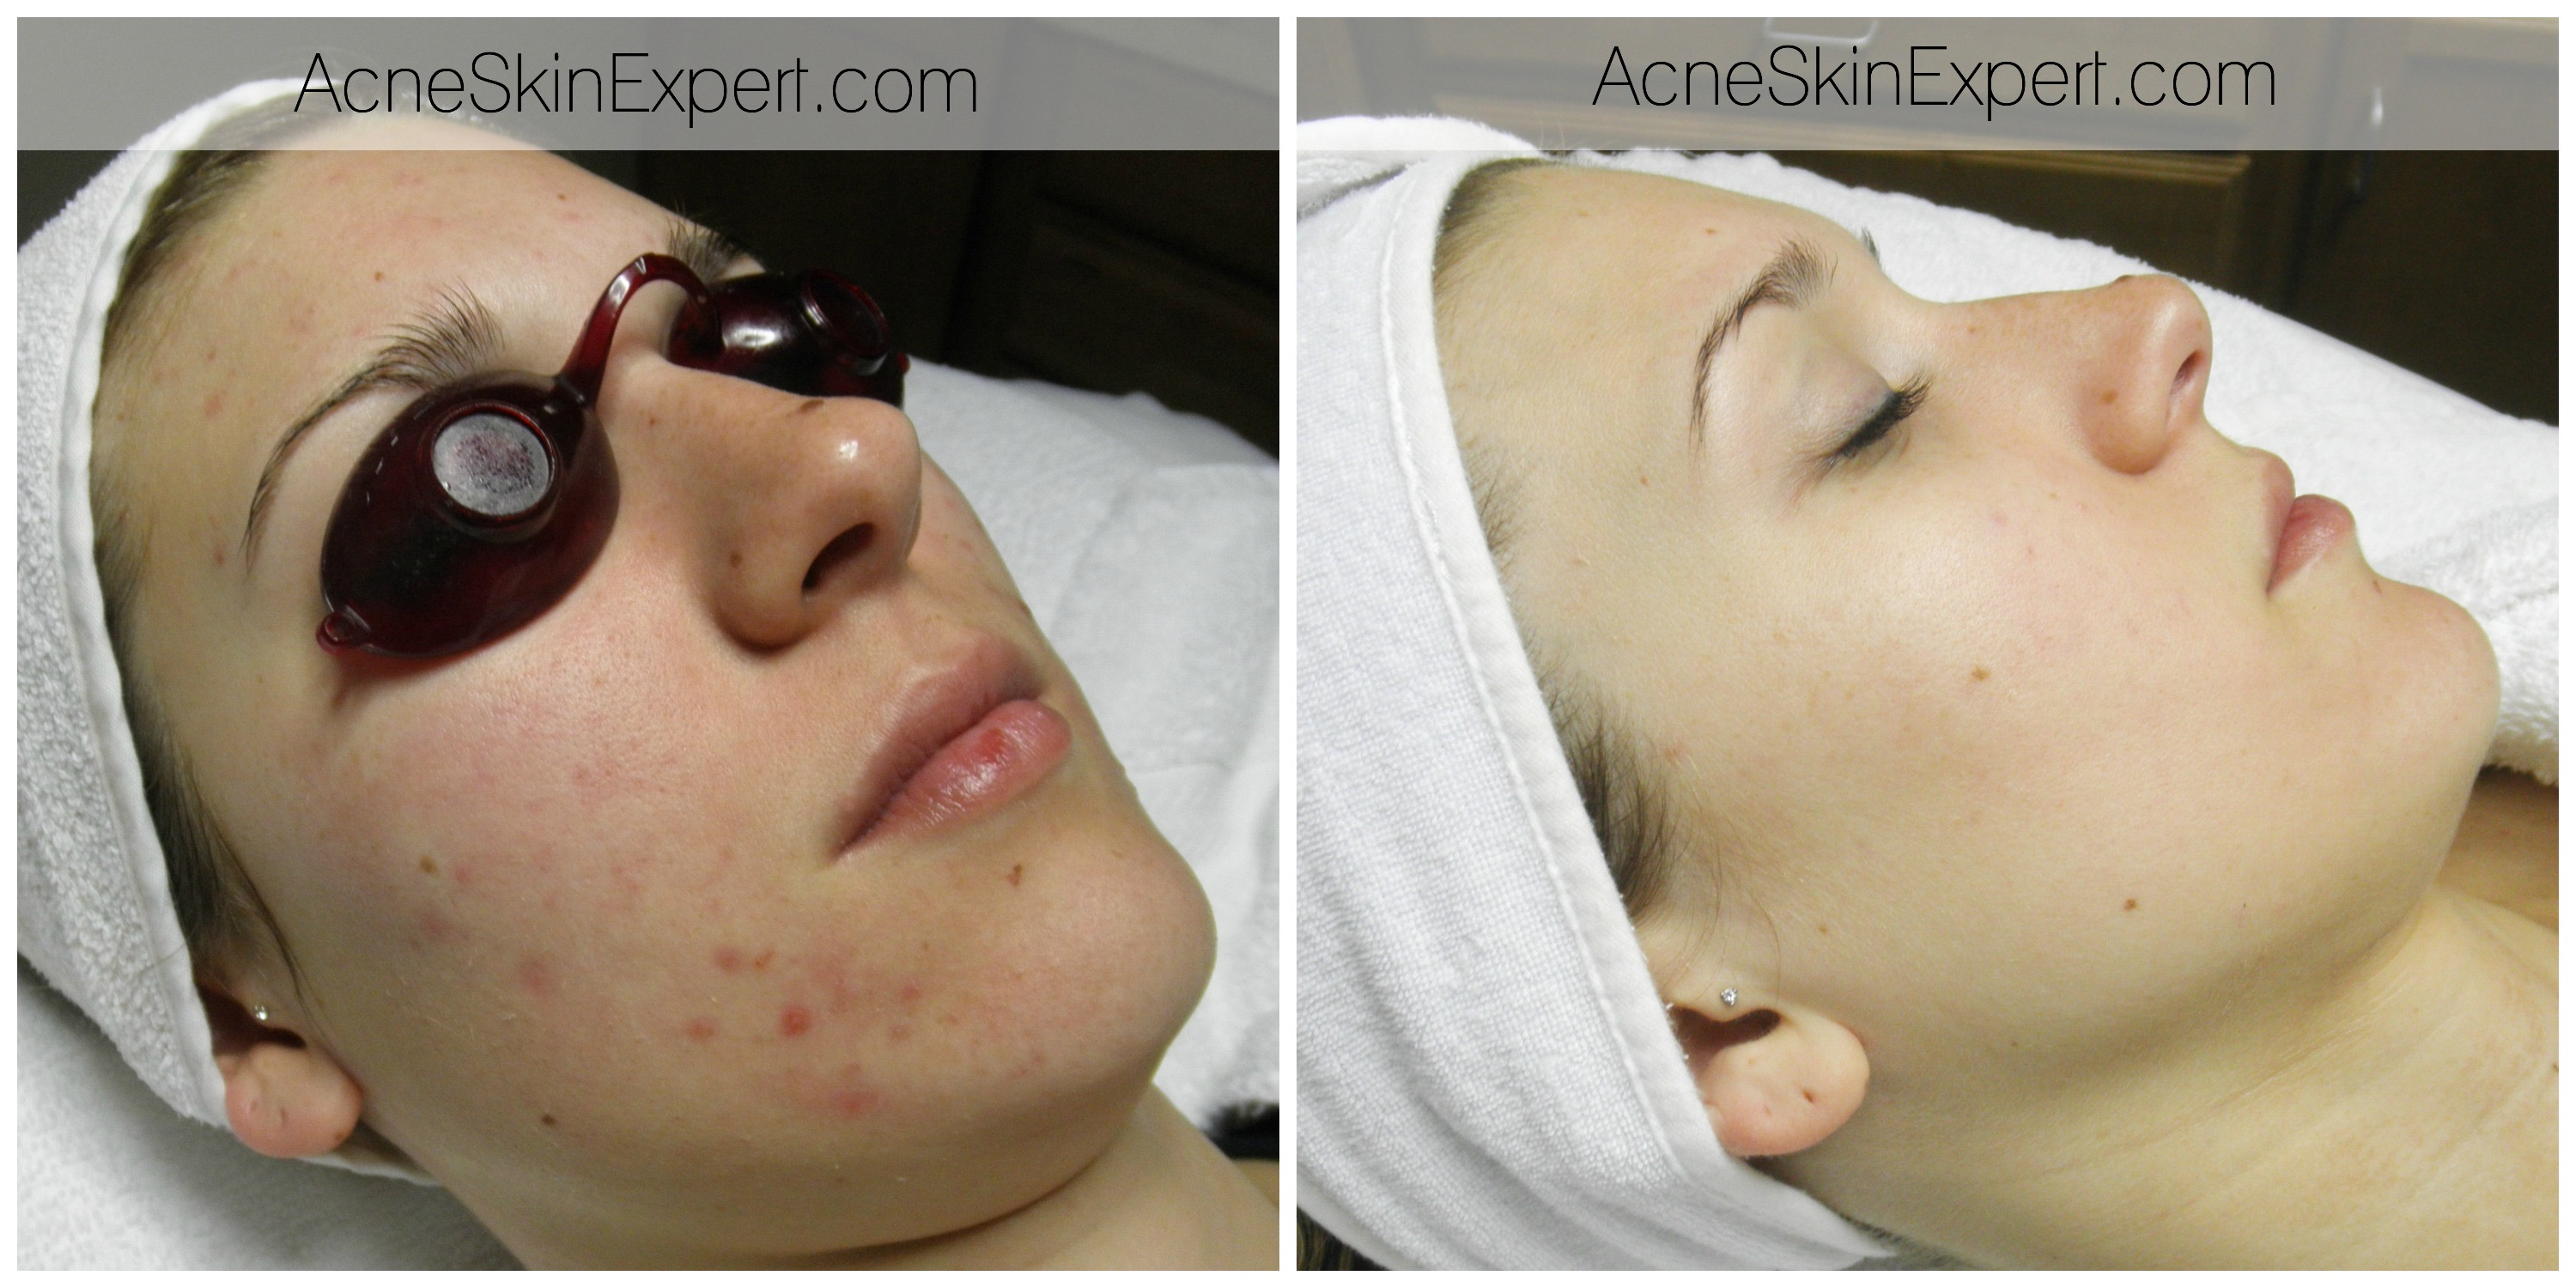 acne-sensitive-skin-treatment-AcneSkinExpert.com